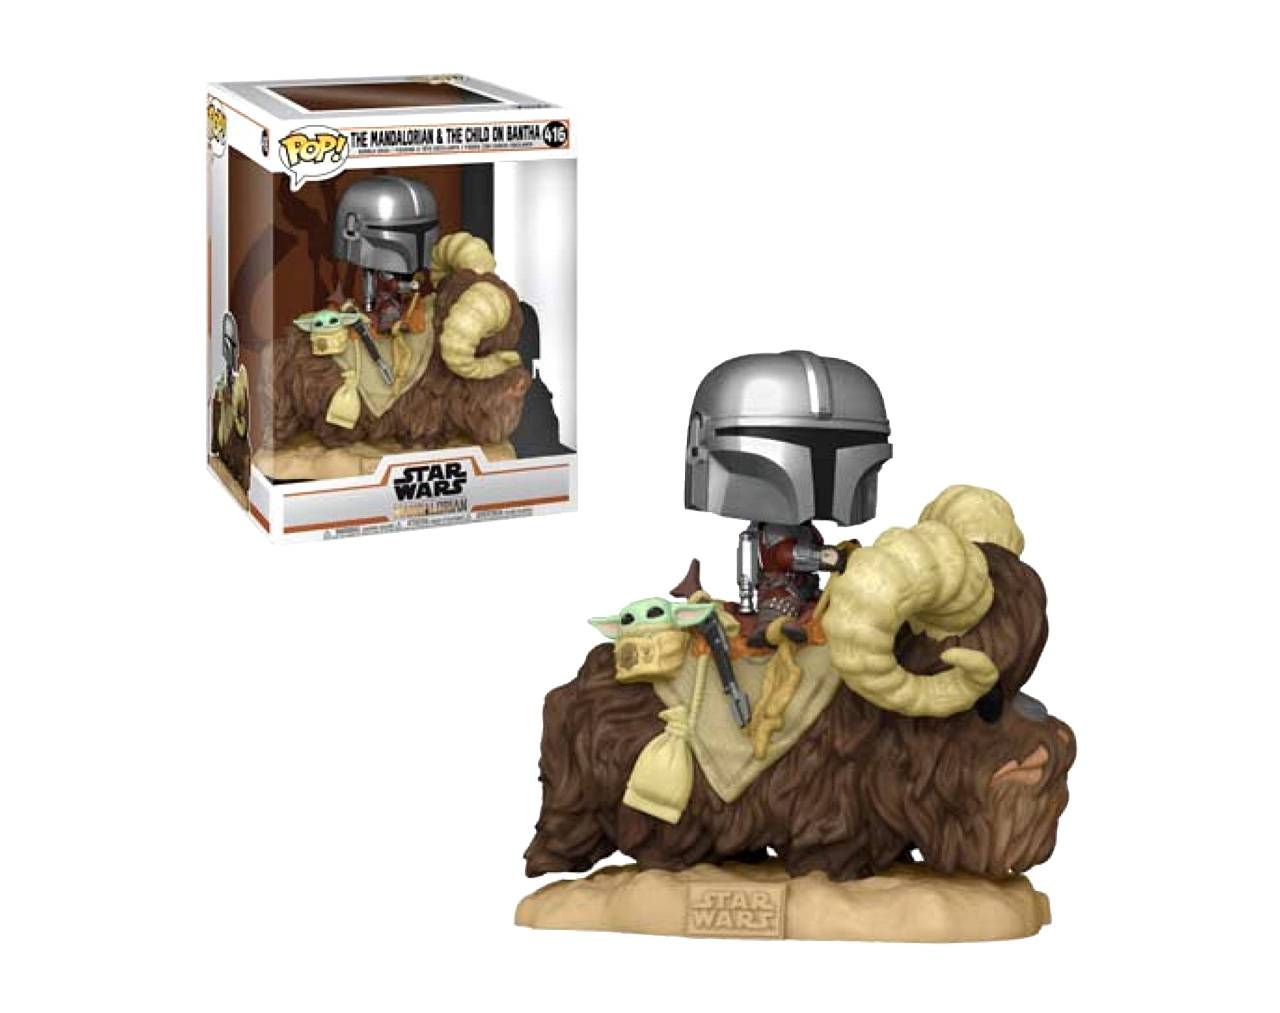 The Mandalorian & The Child on Bantha Pop! Vinyl